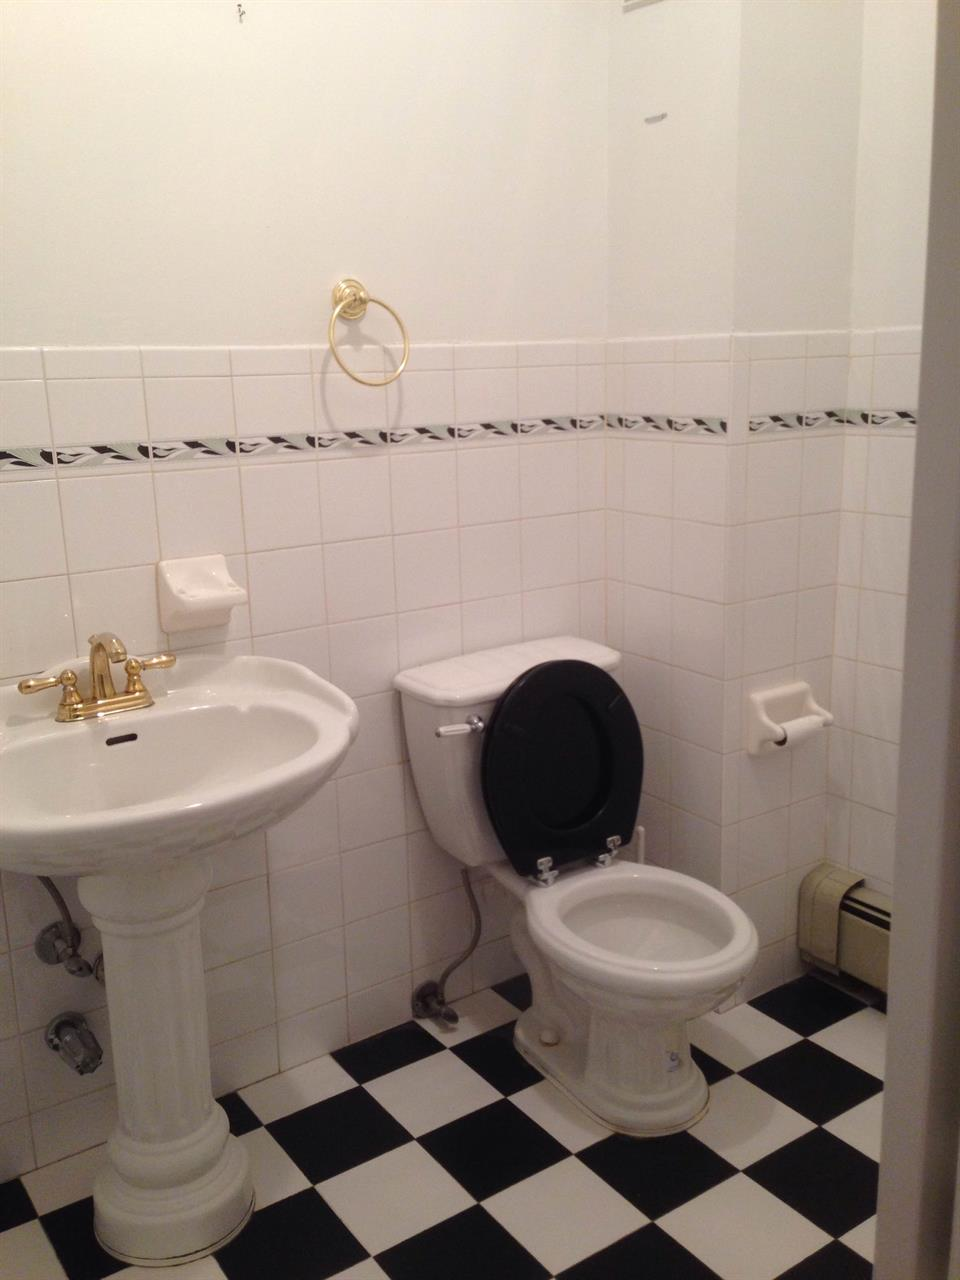 Additional photo for property listing at 916 Bay Ridge Pkwy  Brooklyn, New York 11228 United States